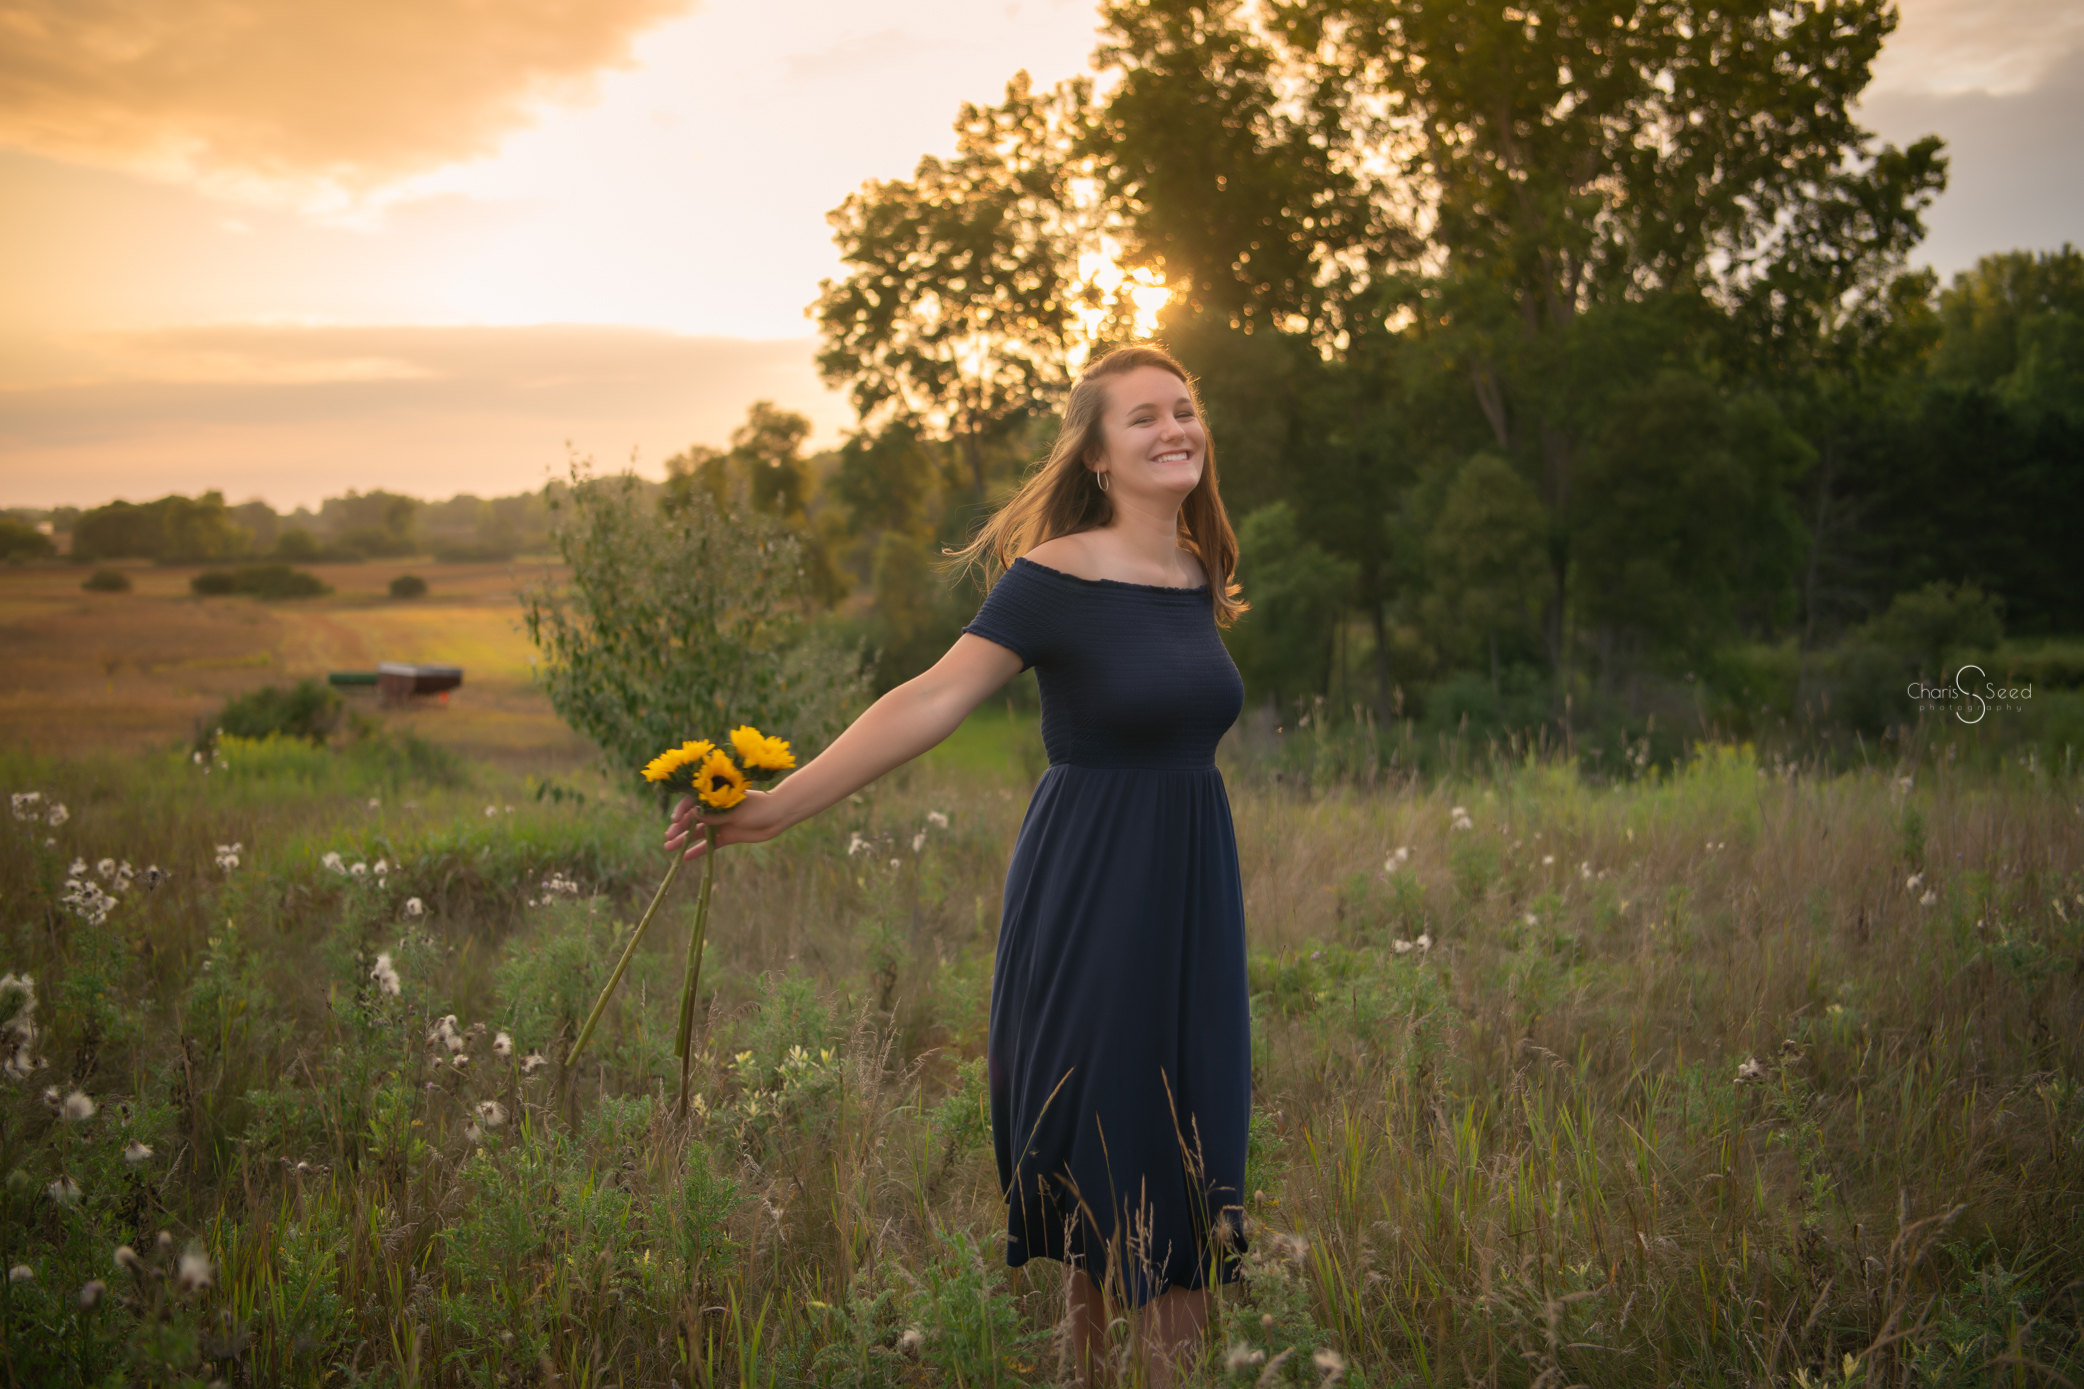 dancing in field with sunflowers